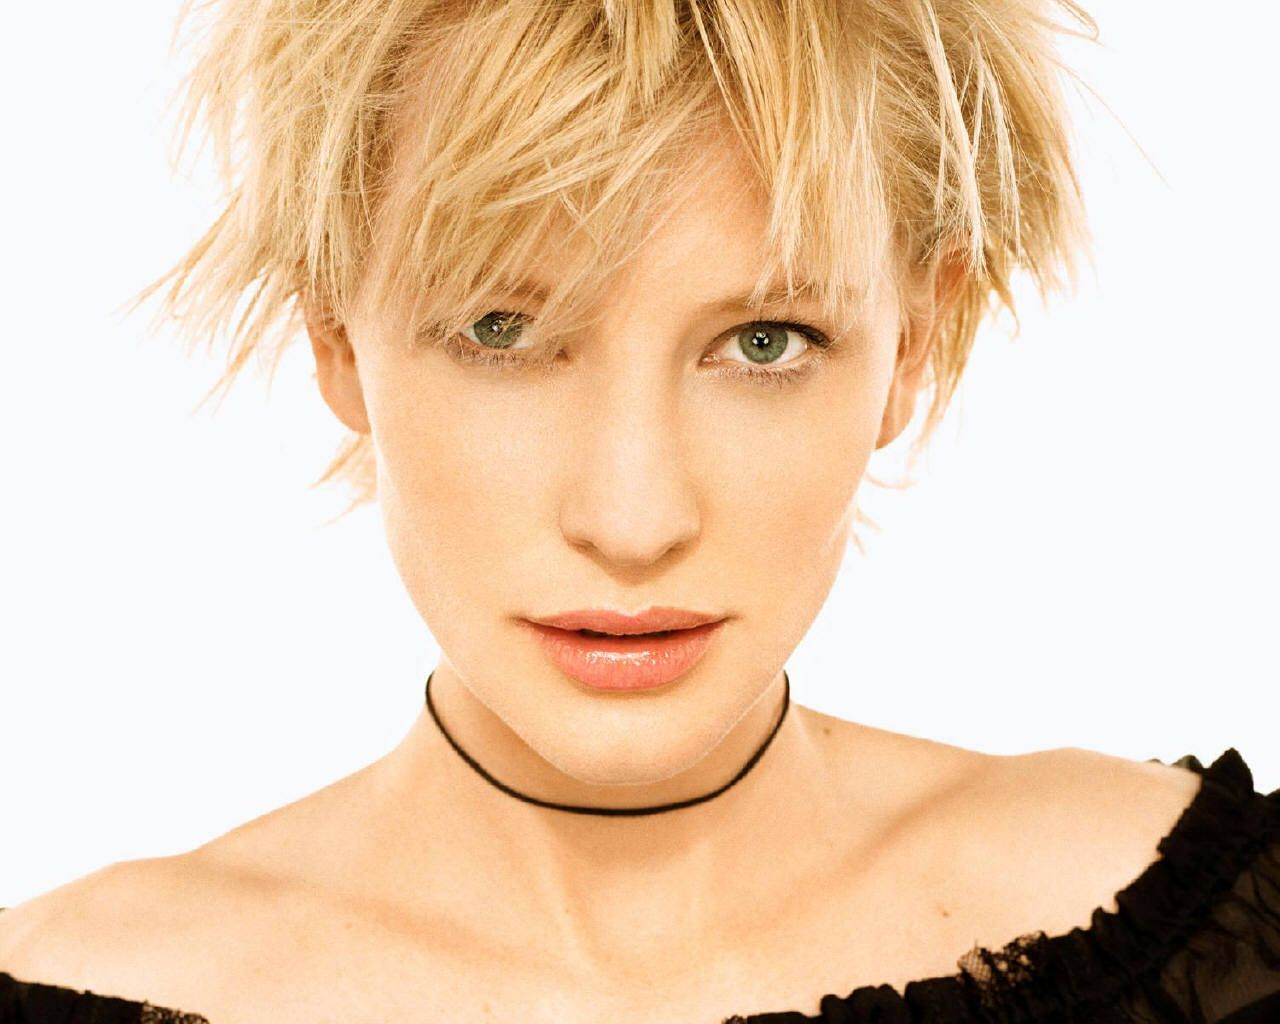 CATE BLANCHETT Young PICTURES PHOTOS and IMAGES Cate